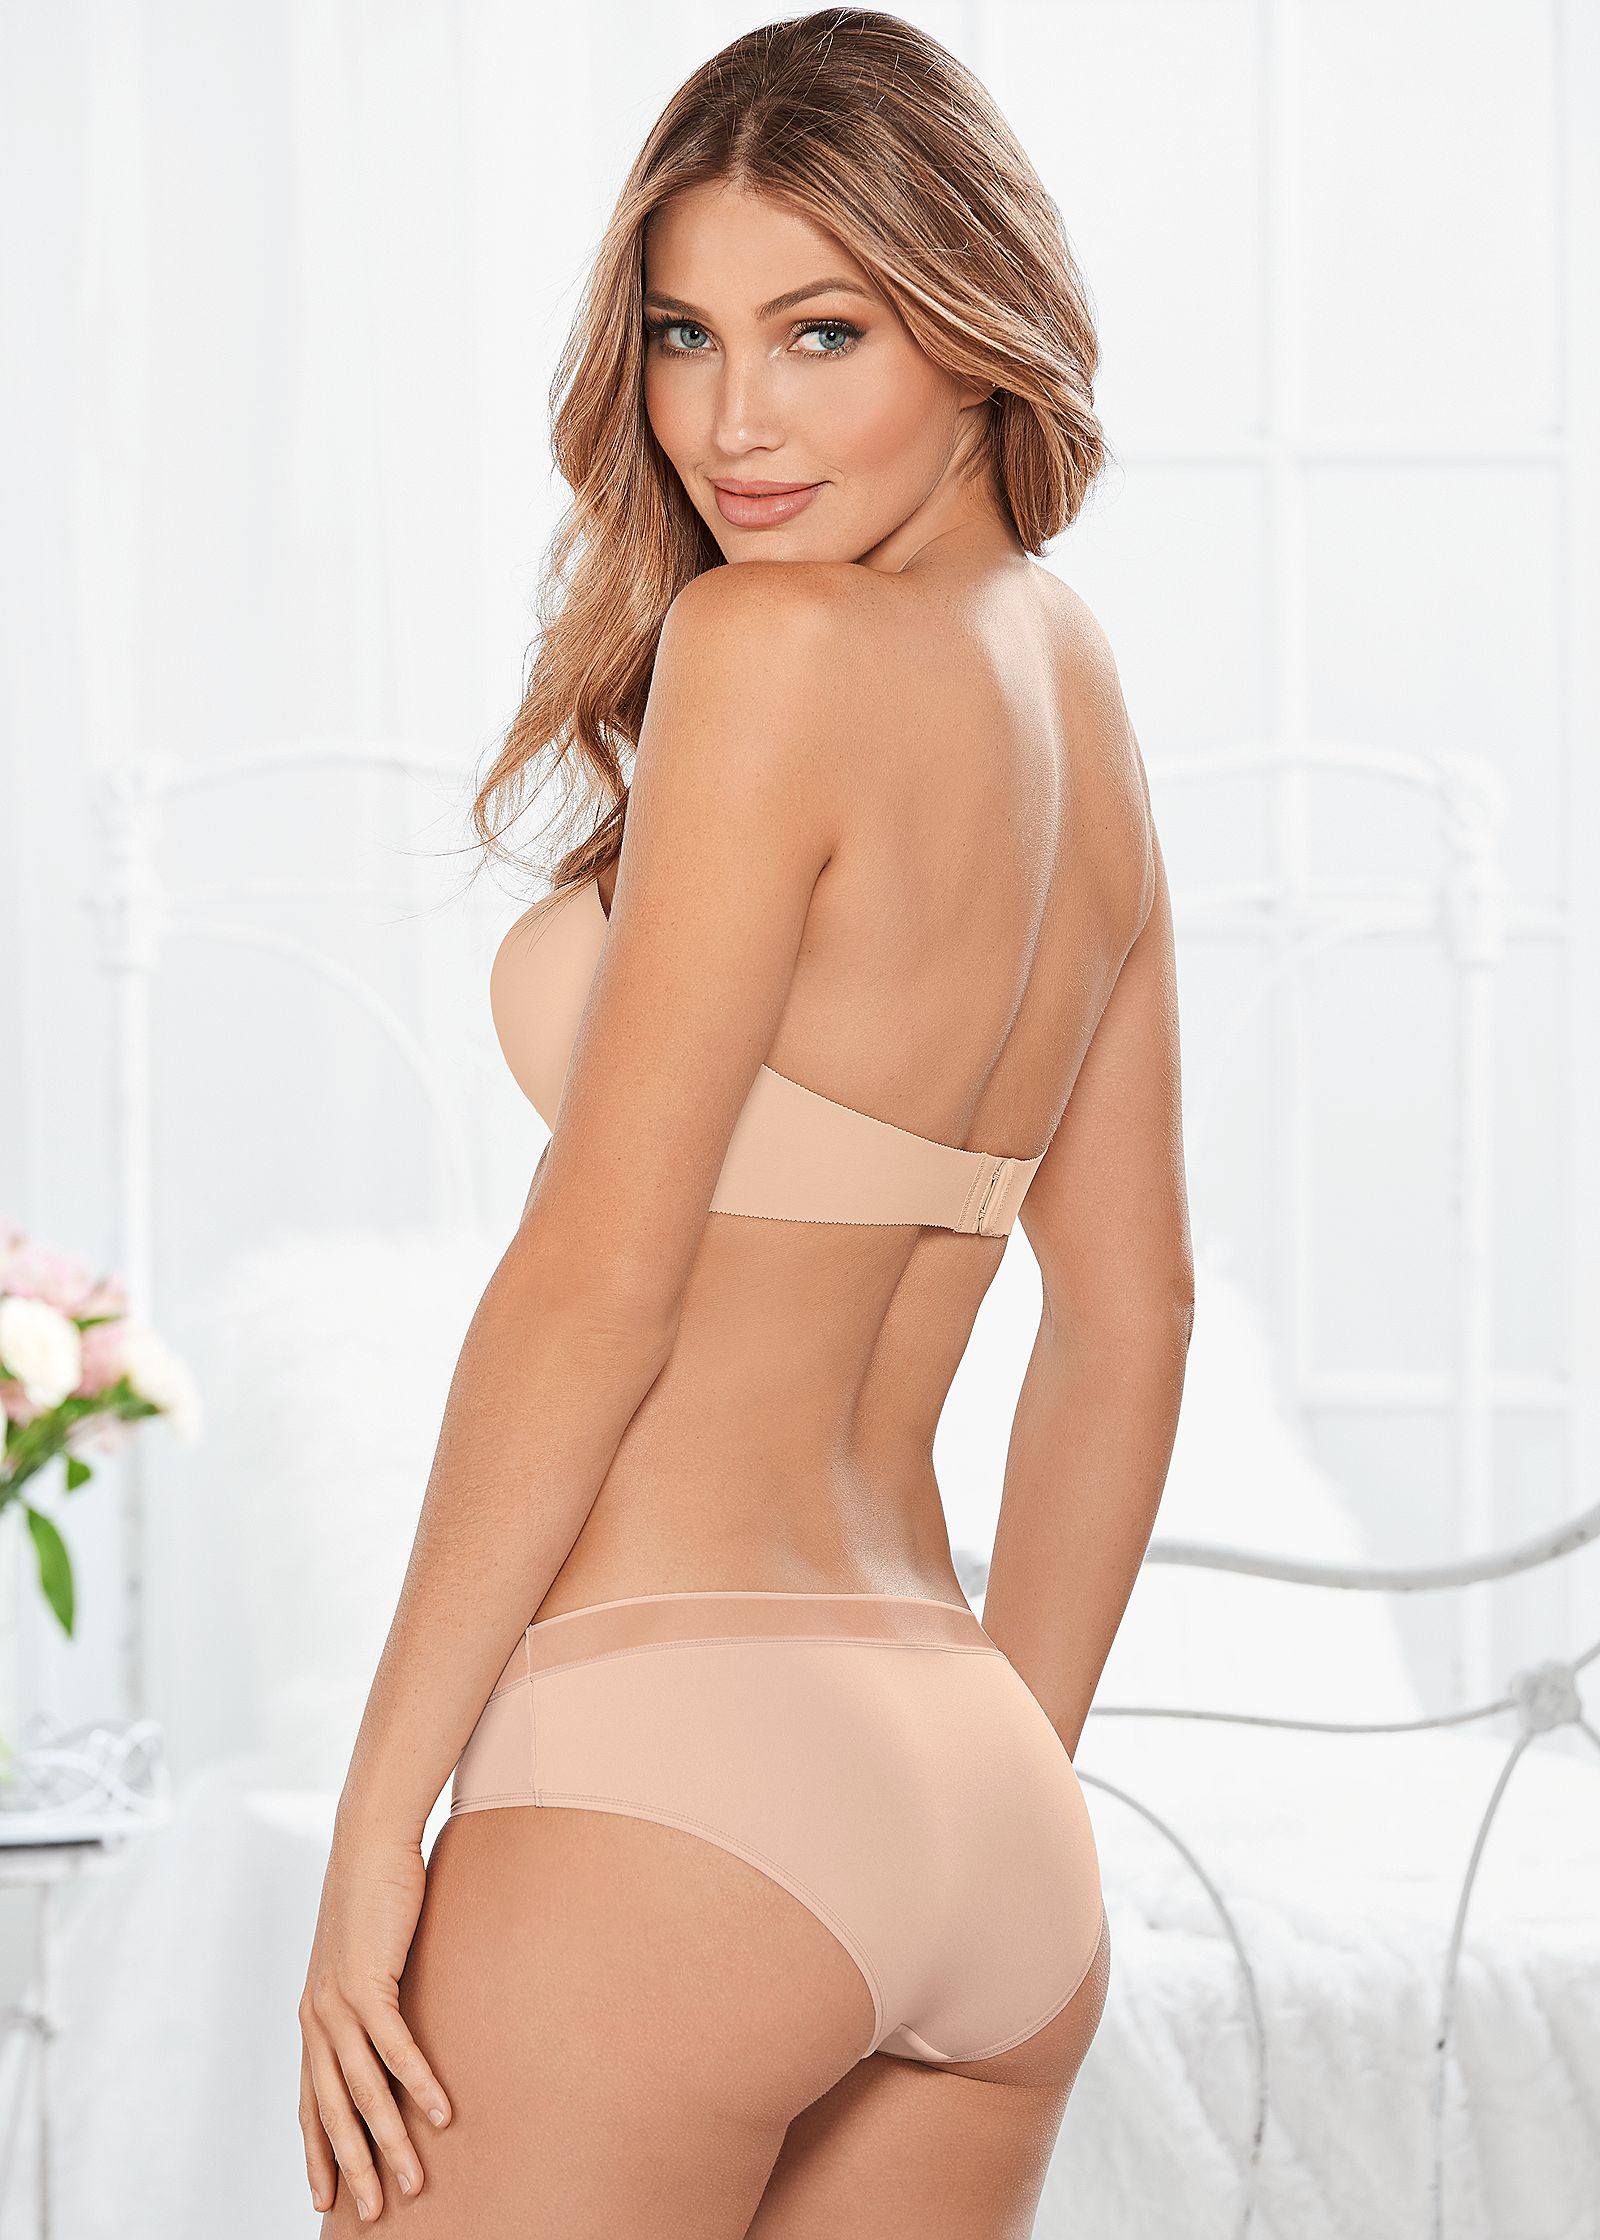 Panty nude pic